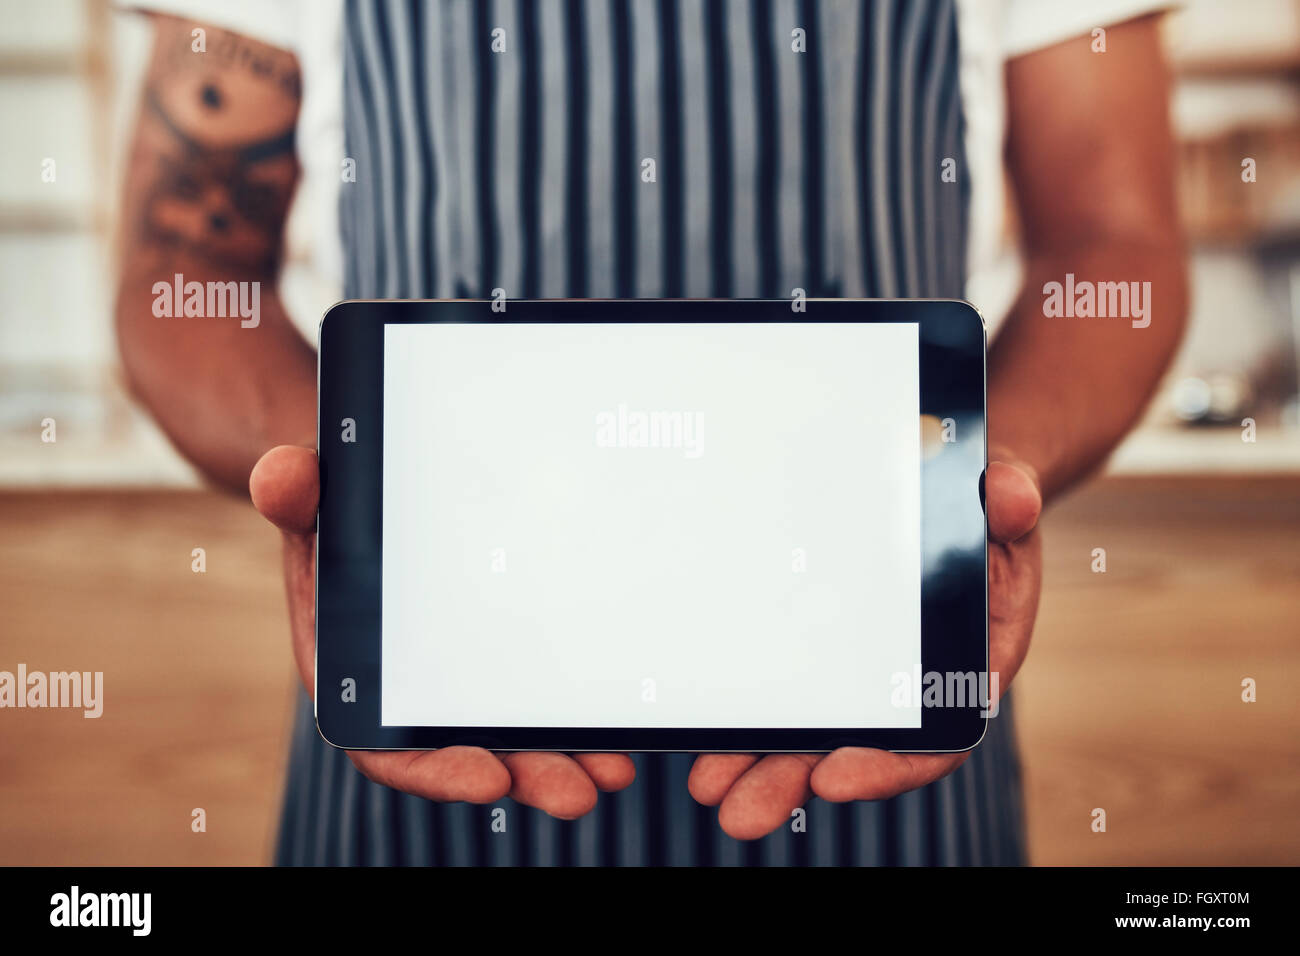 Close up portrait of a man wearing an apron holding a digital tablet with a blank white screen. Waiter holding a - Stock Image